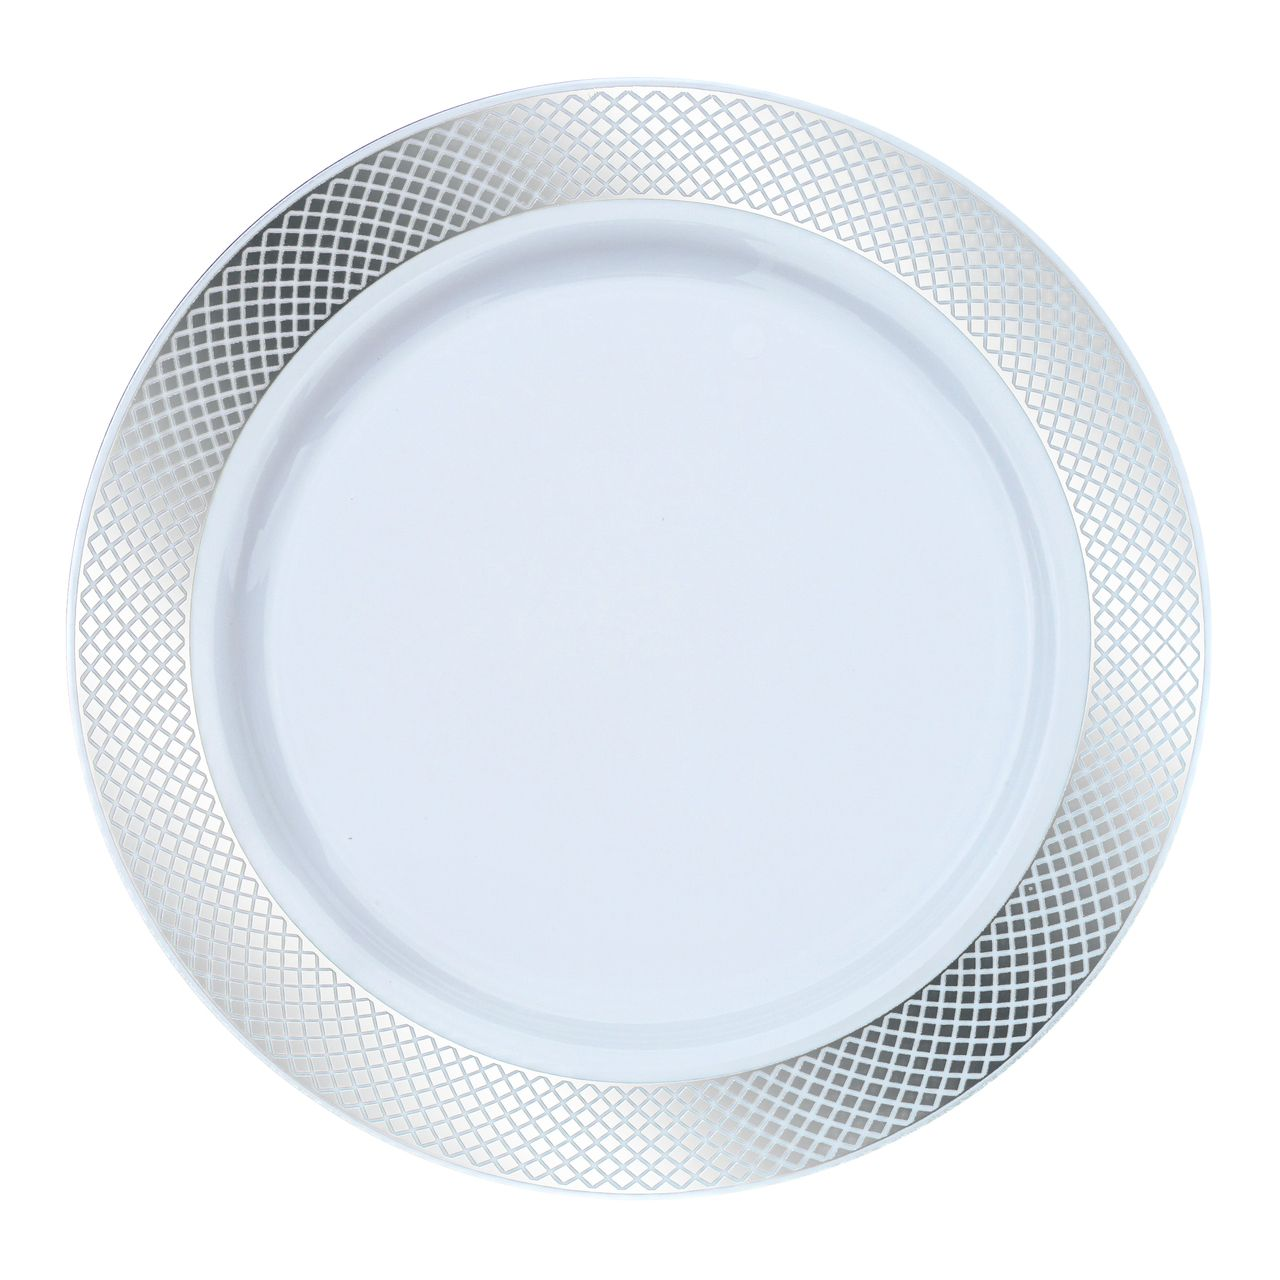 "9"" White/Silver Crystal Plastic Lunch/Dinner Plates ..."